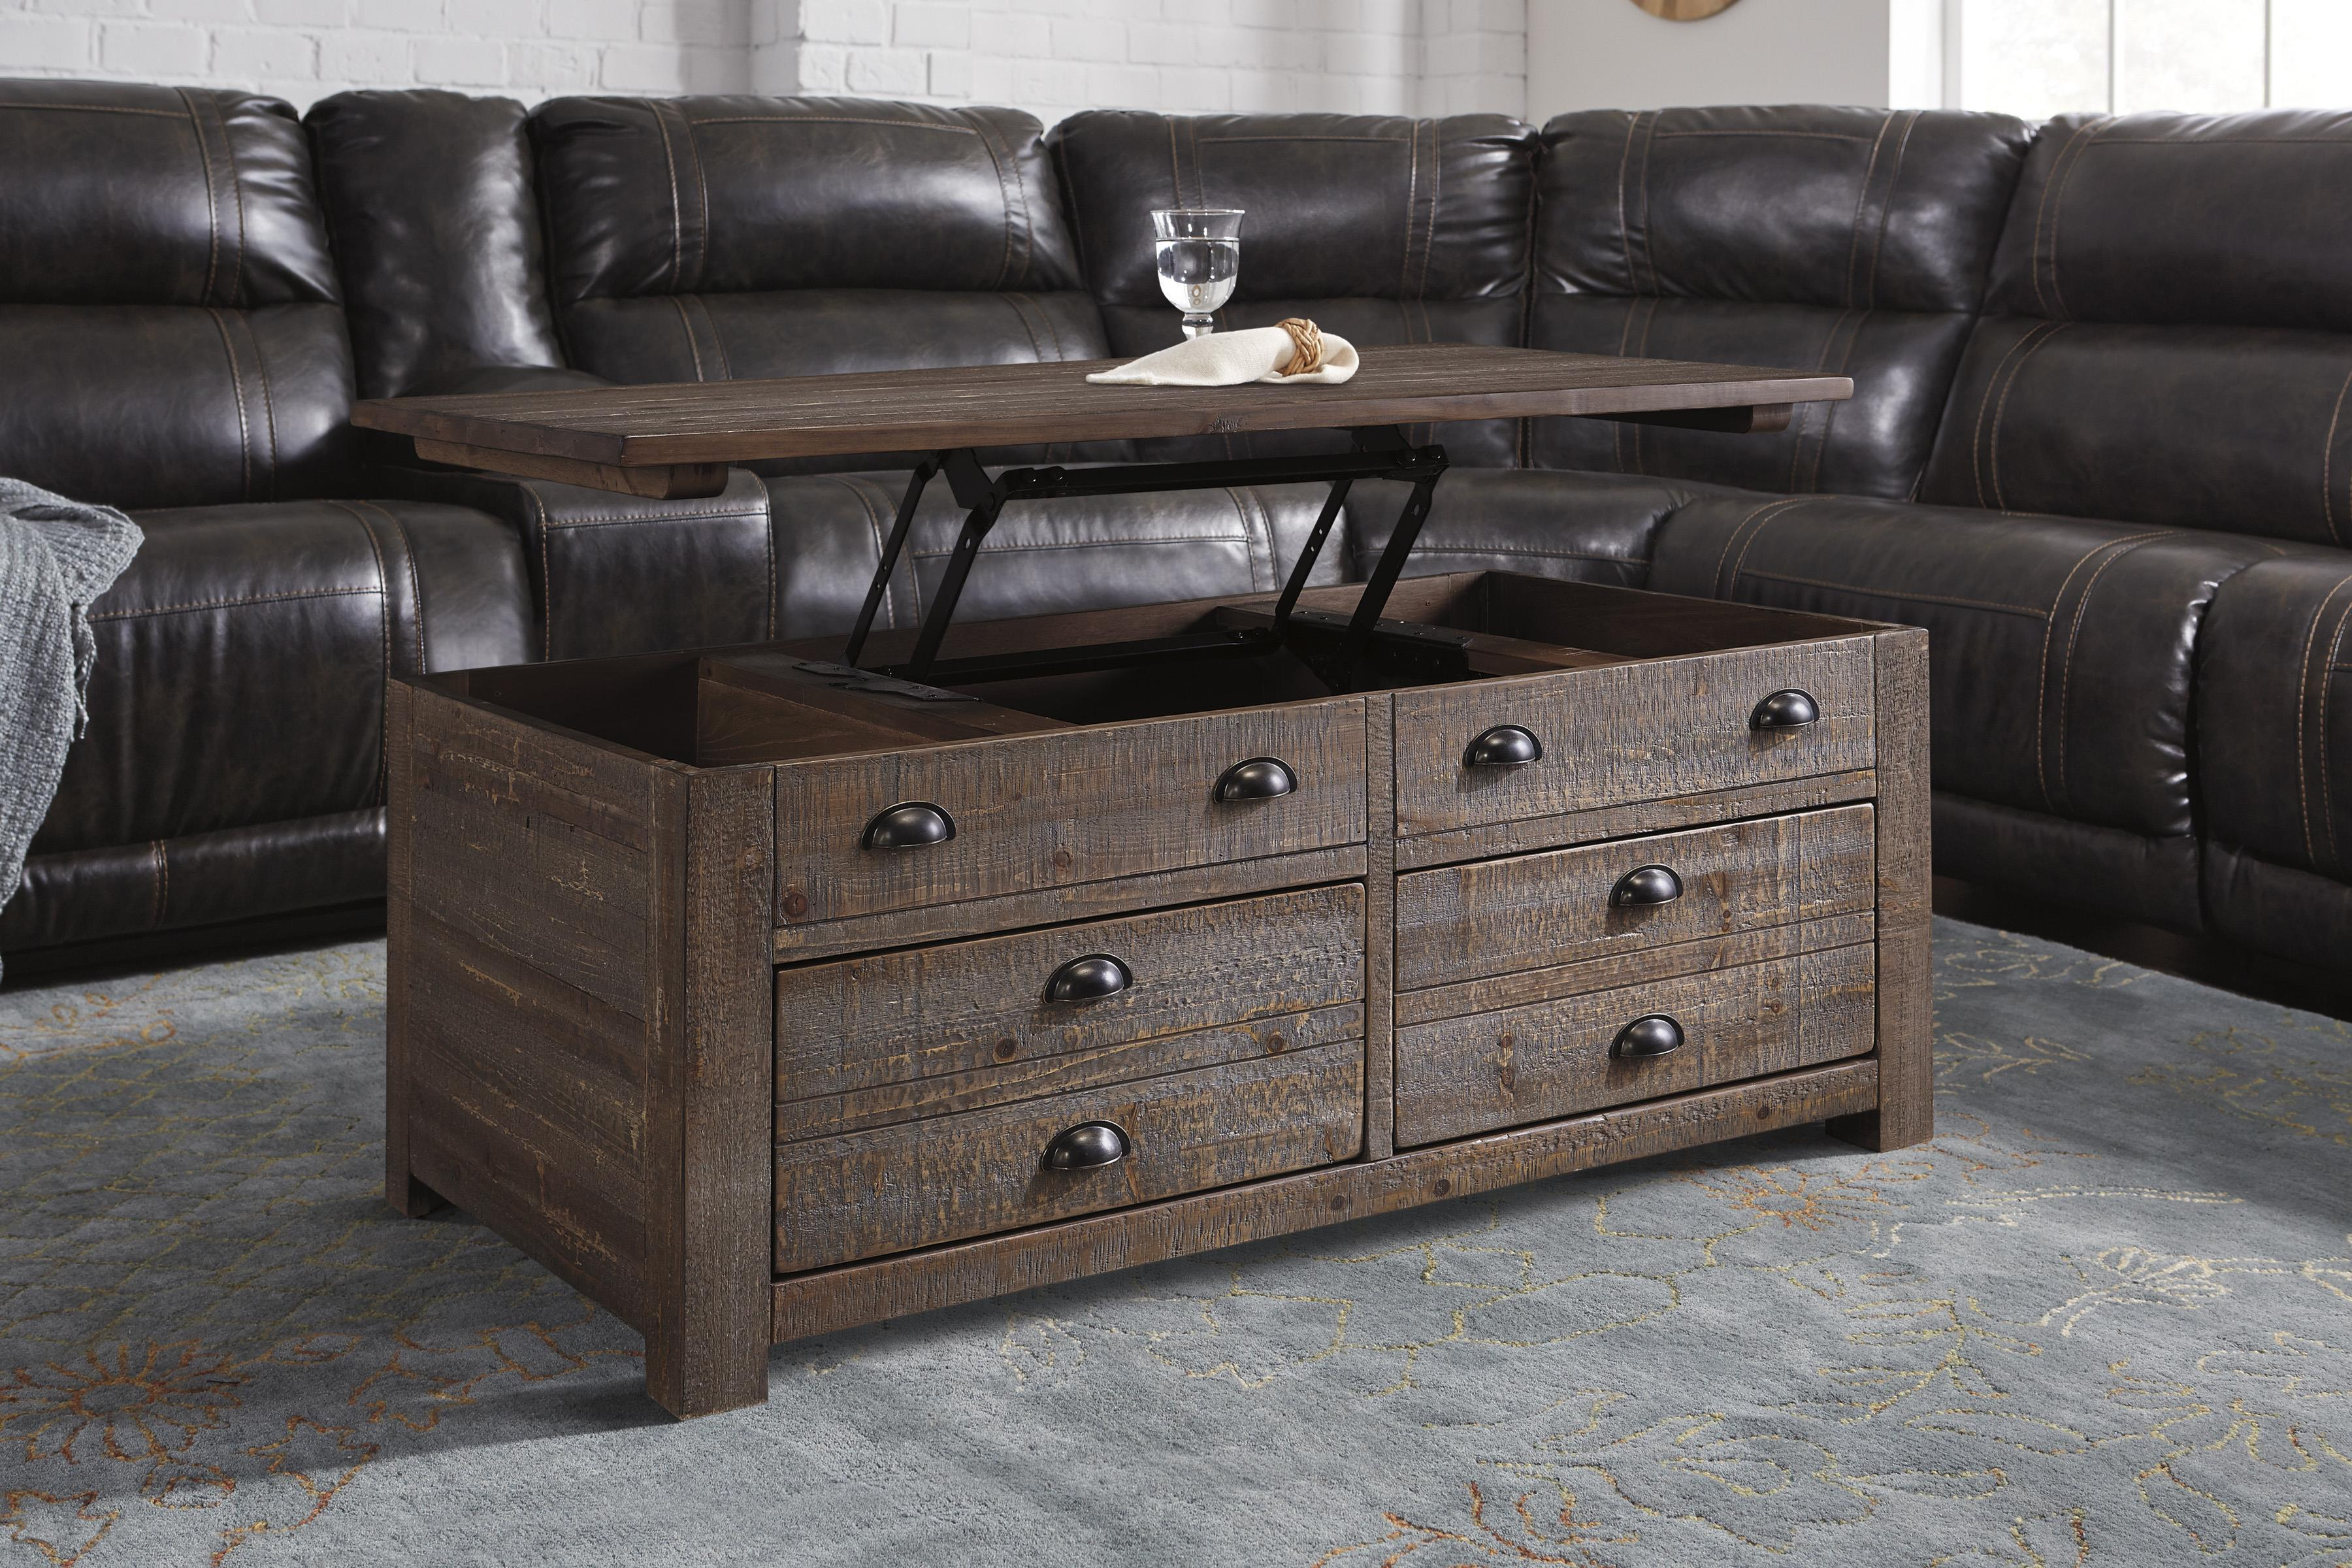 rustic pine trunk-style rectangular lift-top coffee table with 2